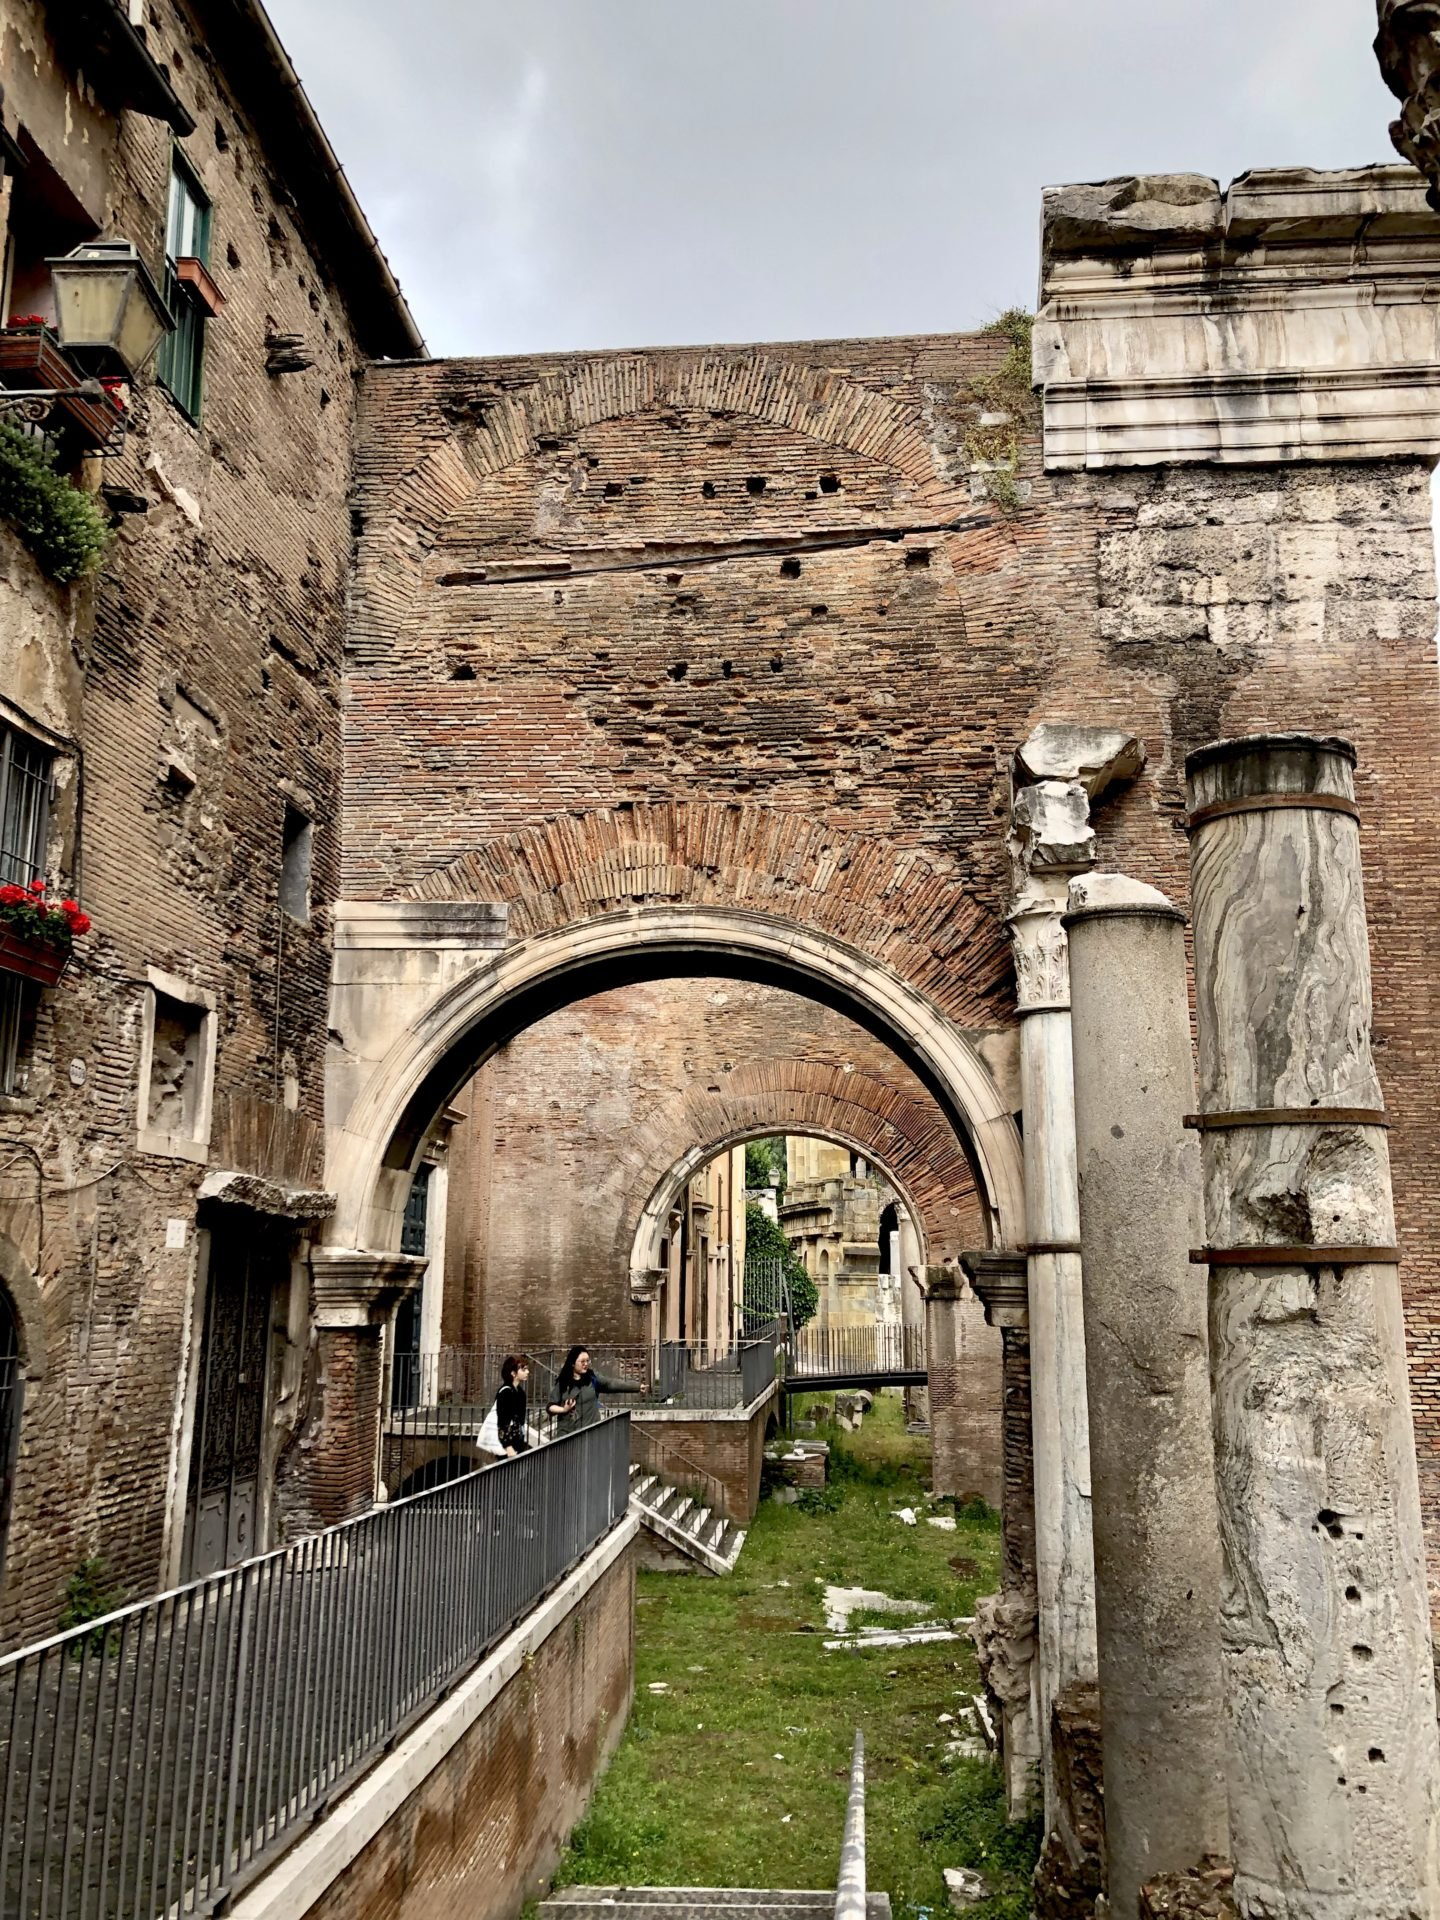 The Portico of Octavia is the remains of an ancient walkway through to the Temple of Apollo.